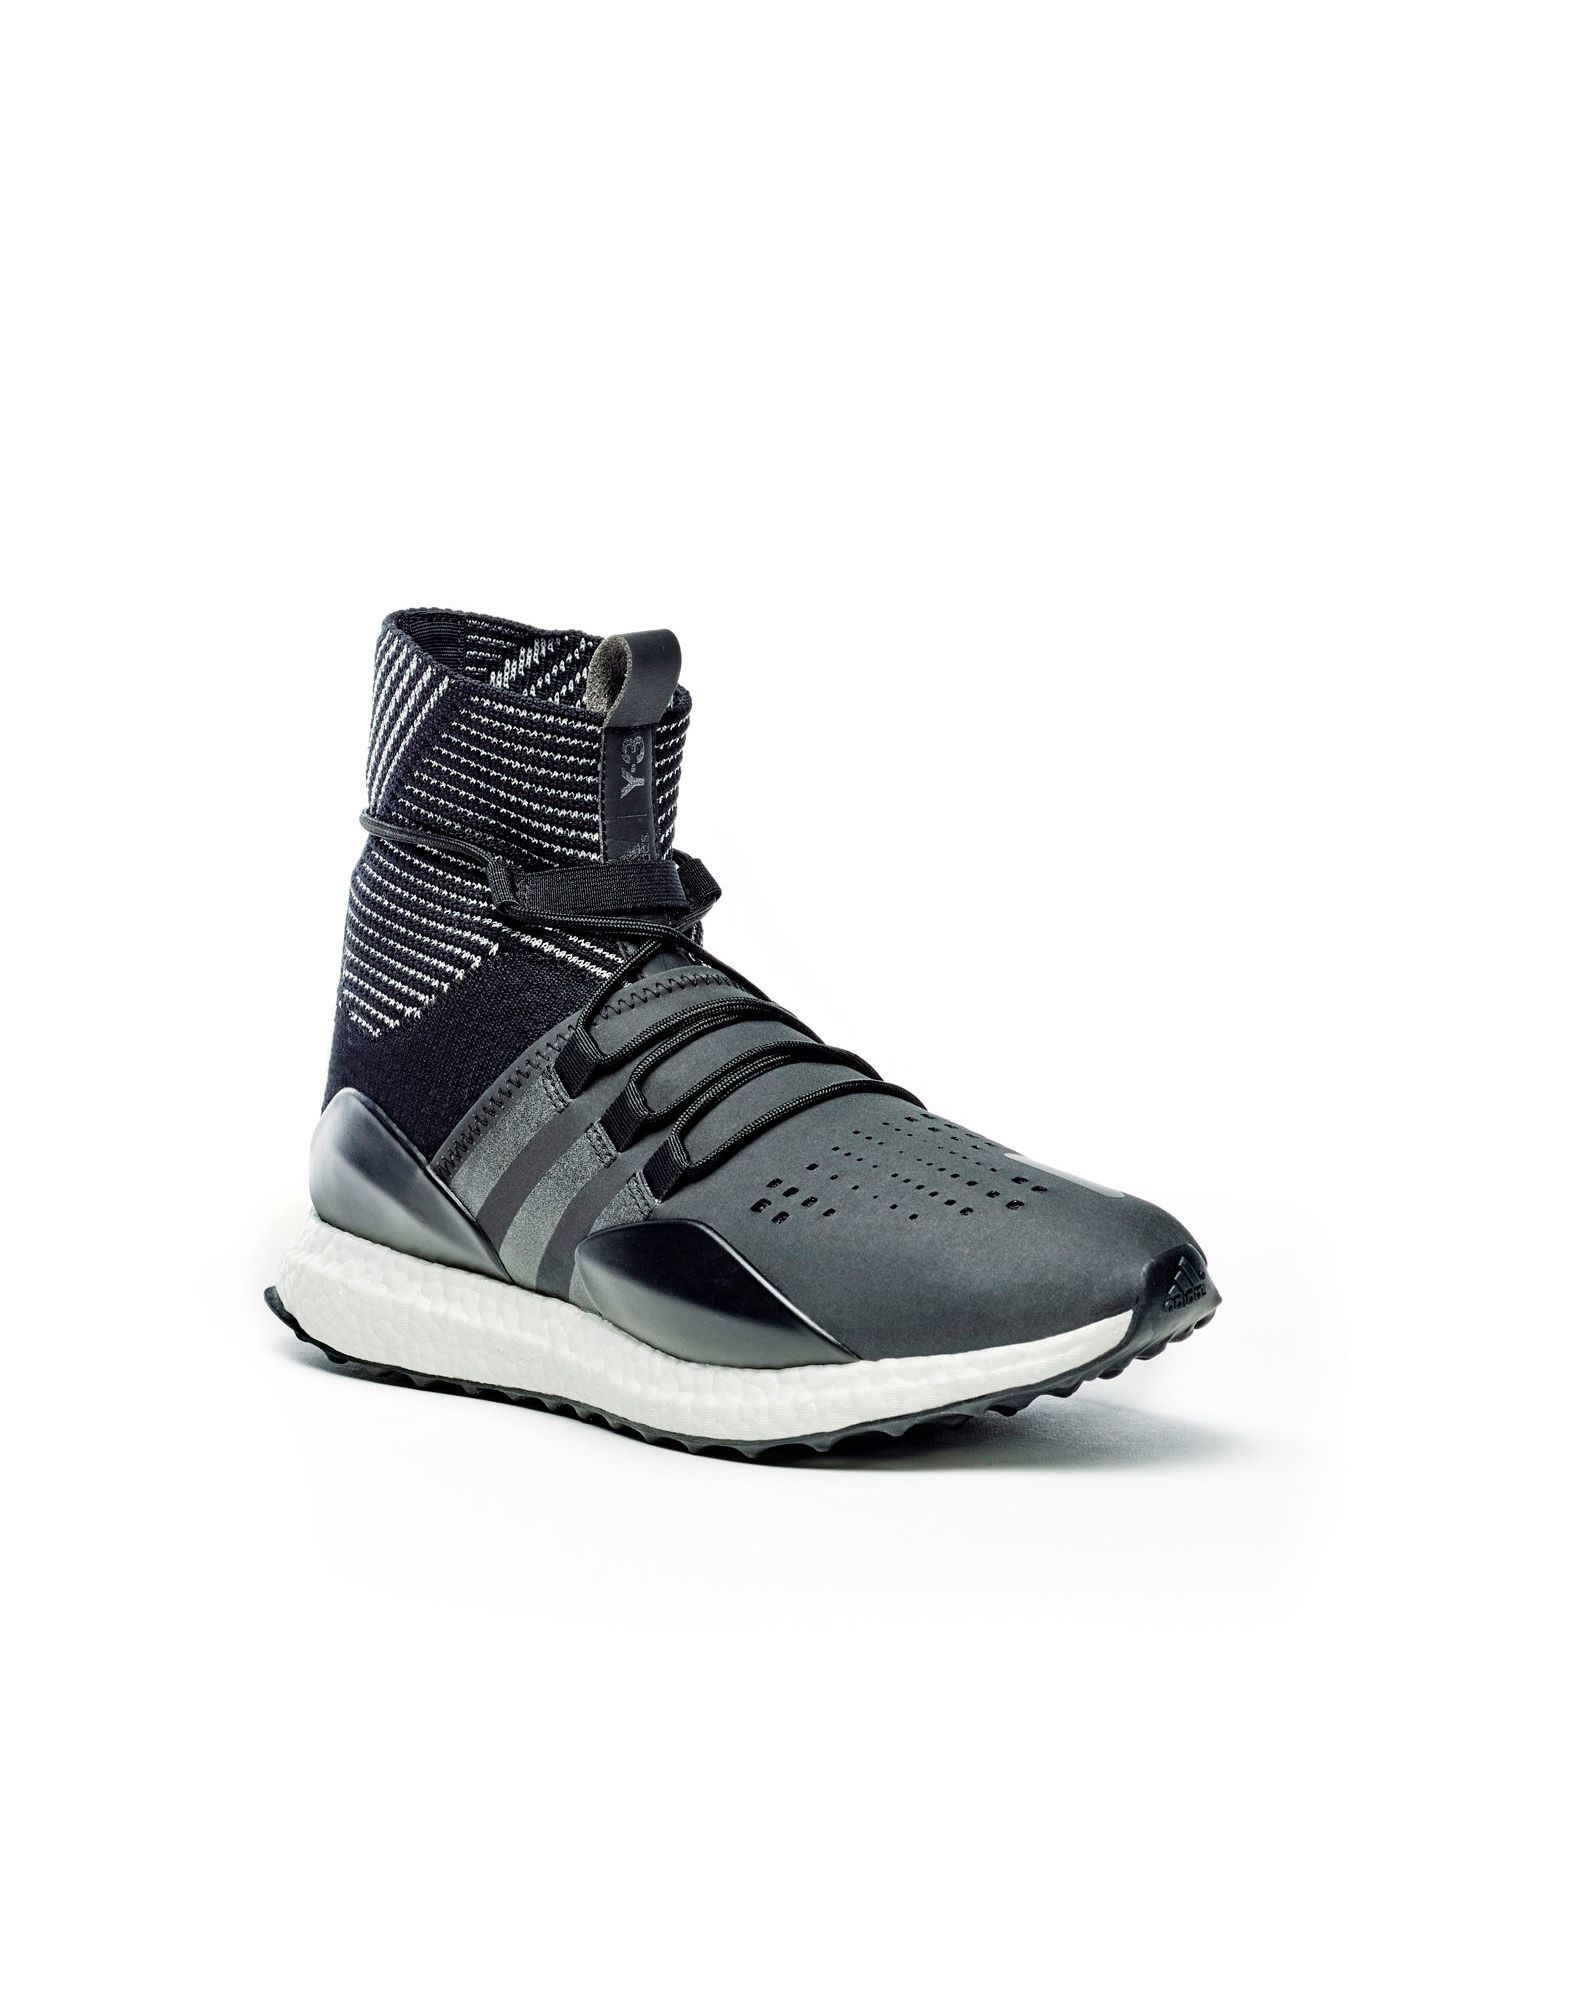 huge discount e3e8d 5af76 Y-3 SPORT APPROACH REFLECT SHOES man Y-3 adidas